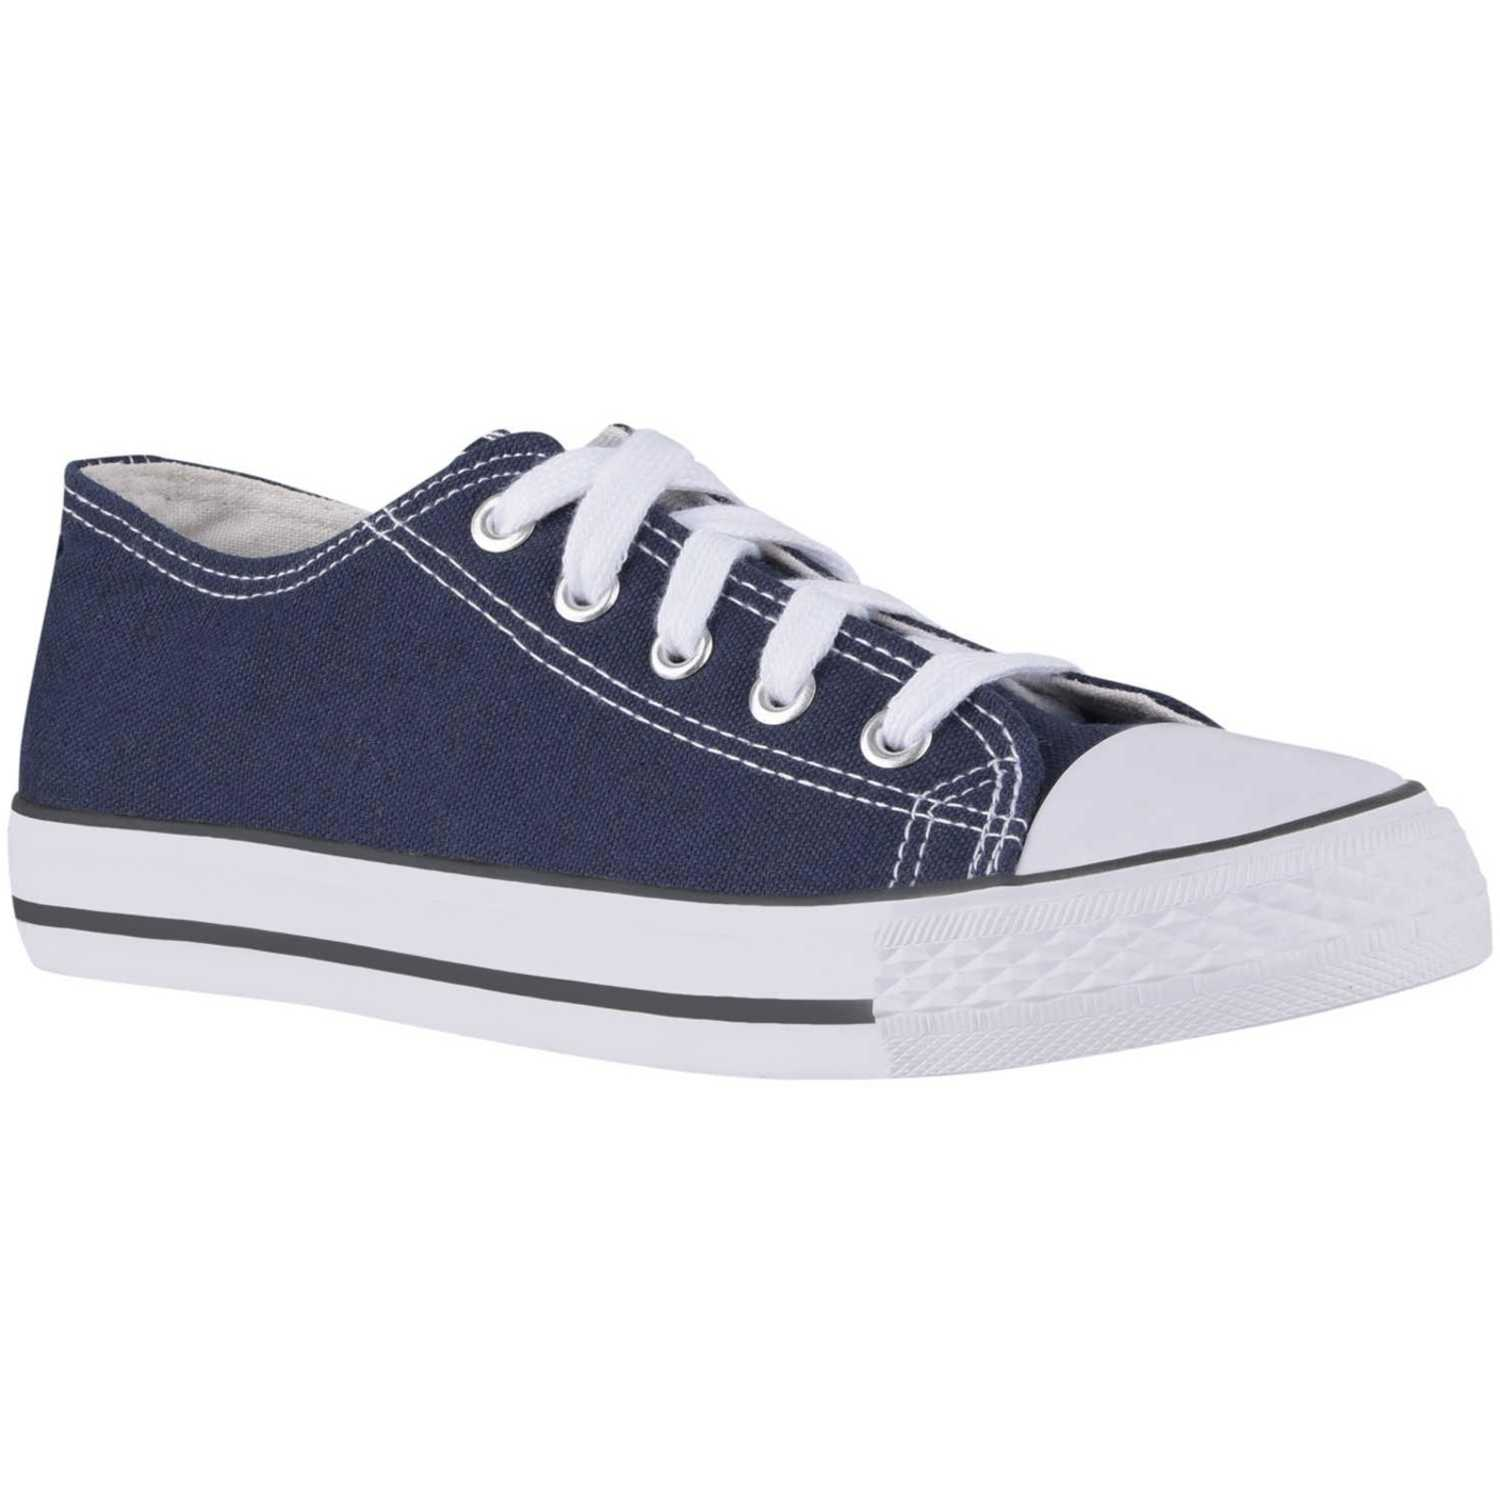 Just4u Zc-418 Azul Zapatillas de moda